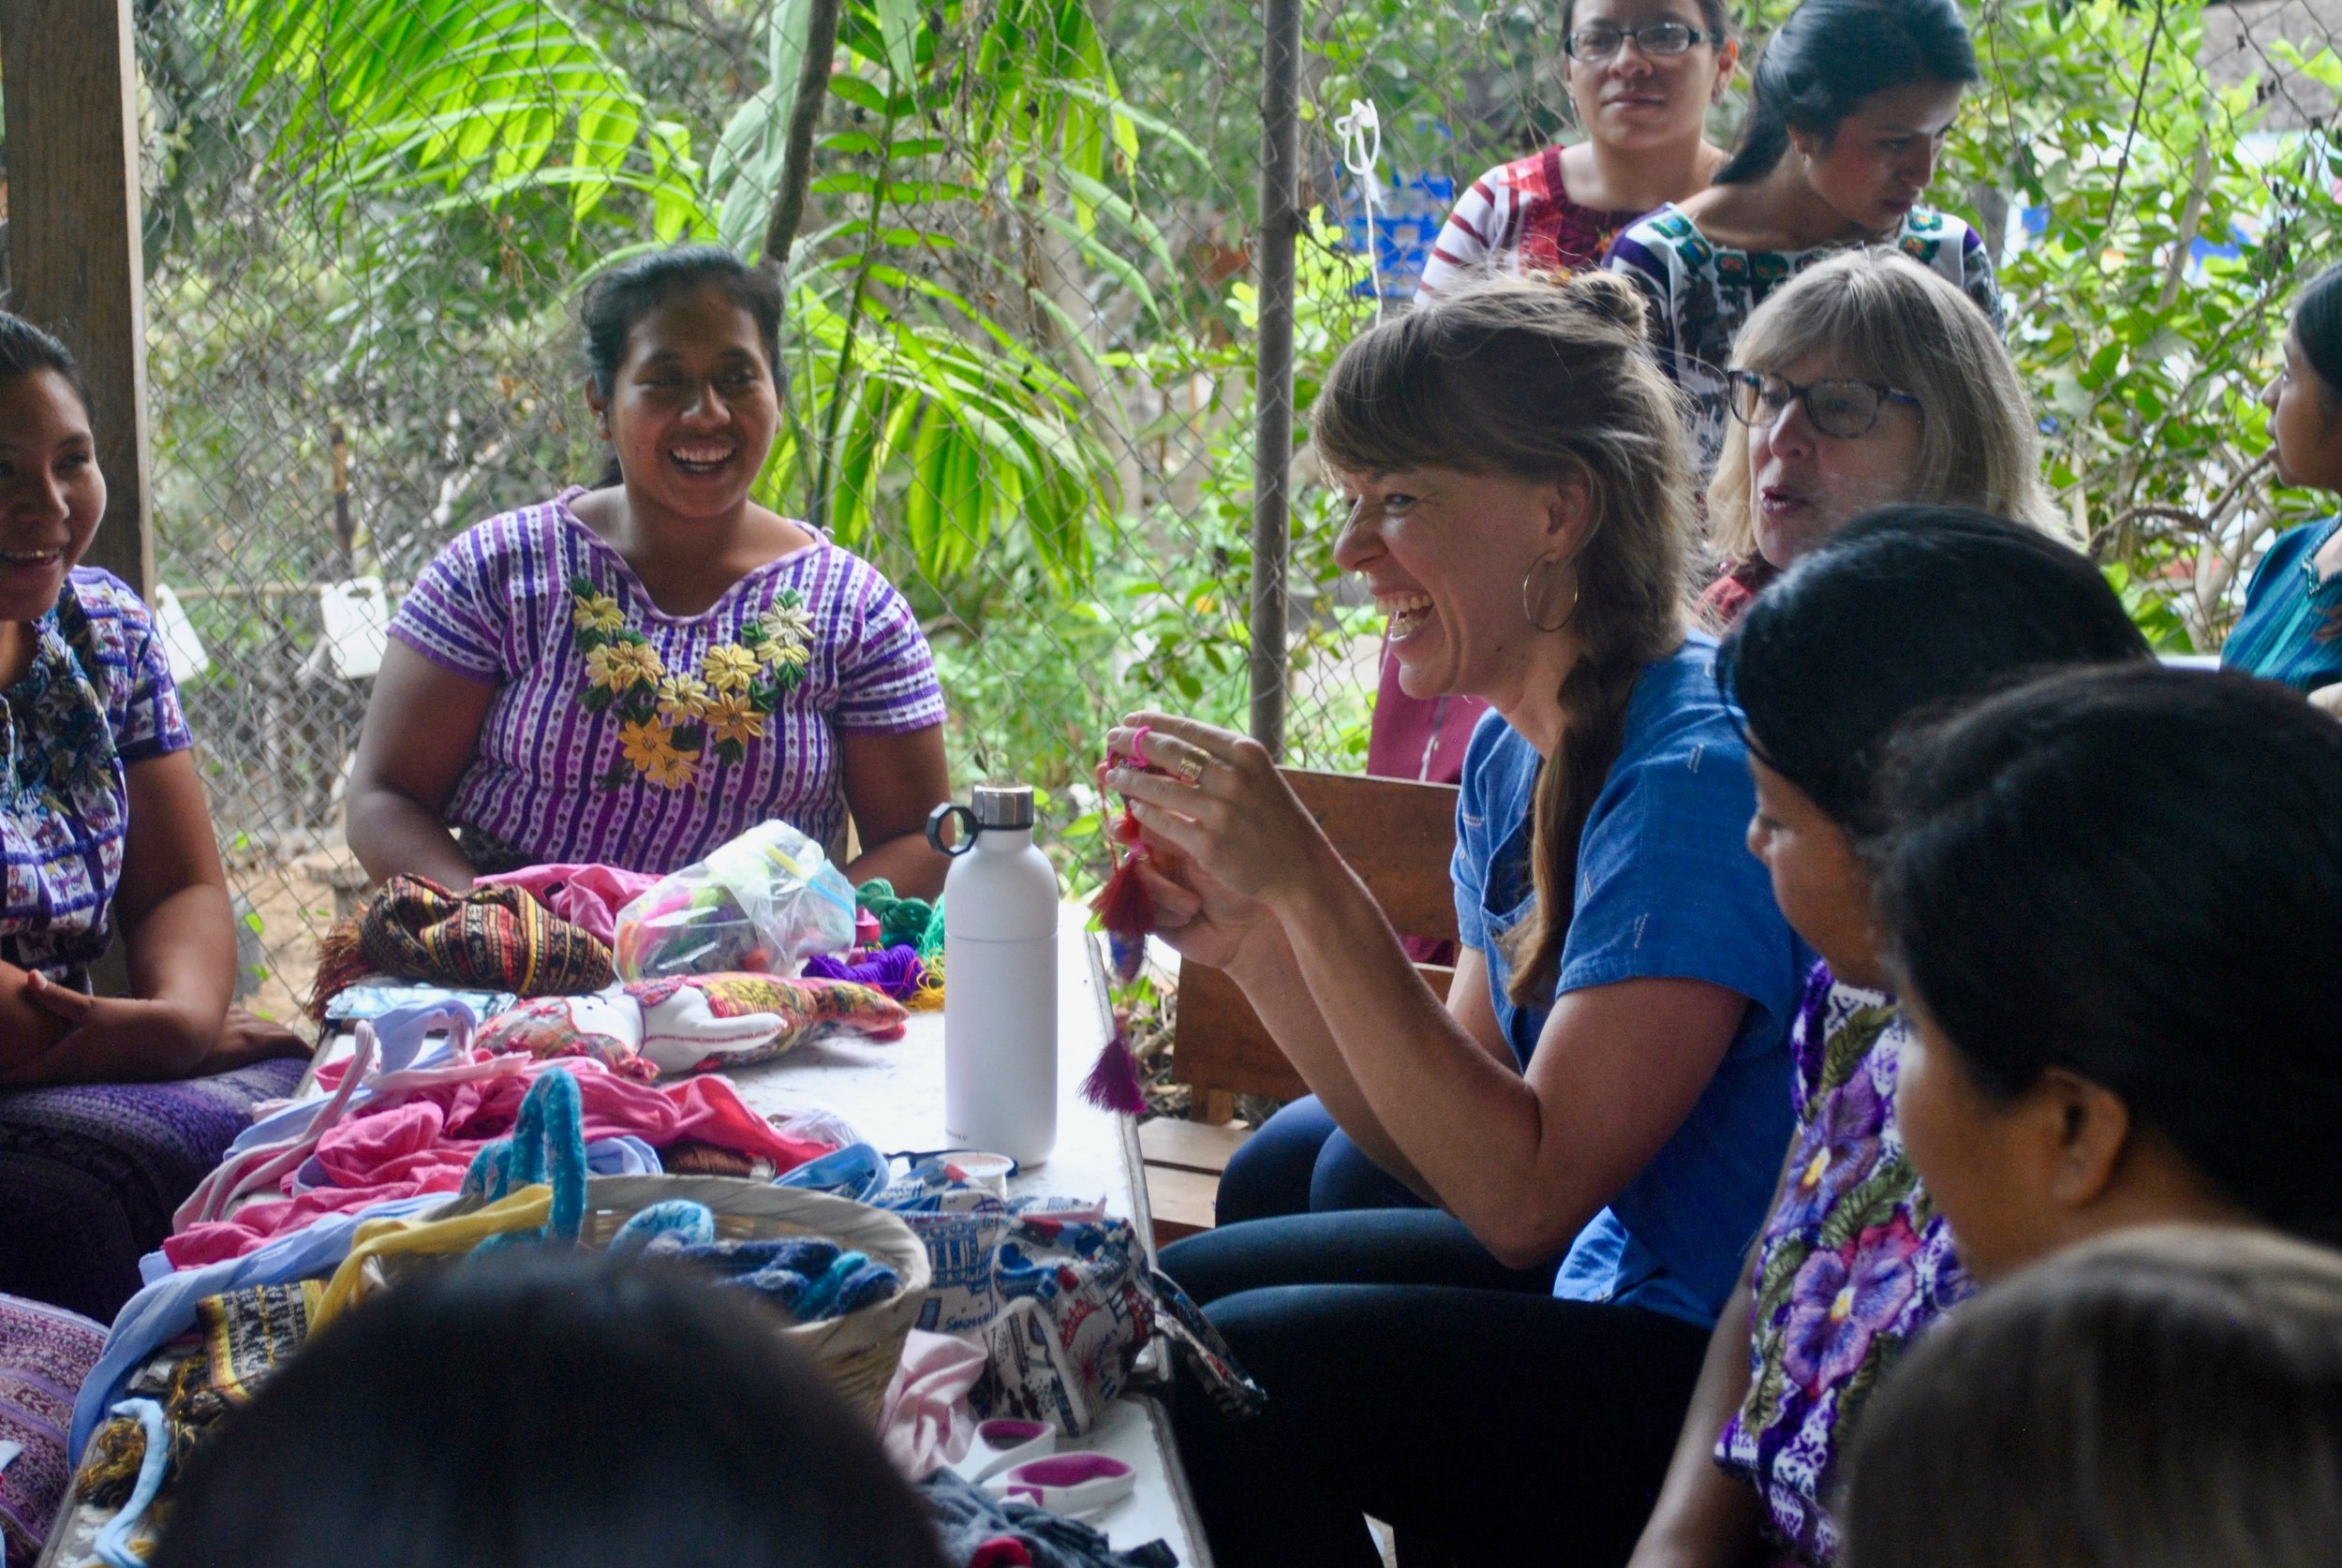 Amanda Zehner (Founder & CEO) sitting down with the Mother Artisan Group at La Puerta Abierta Learning Center.